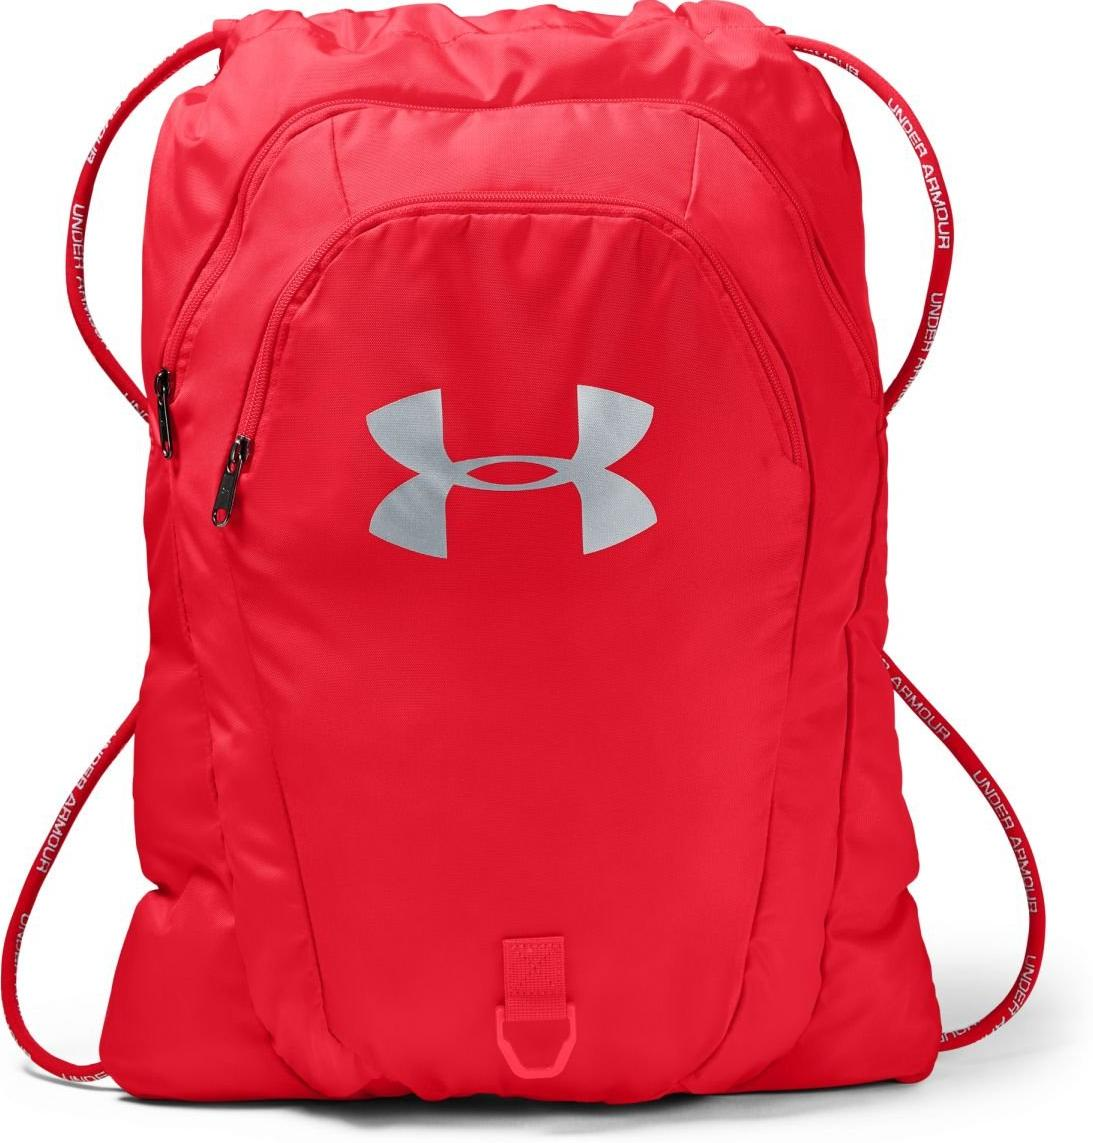 Gymsack Under Armour UA Undeniable 2.0 Sackpack